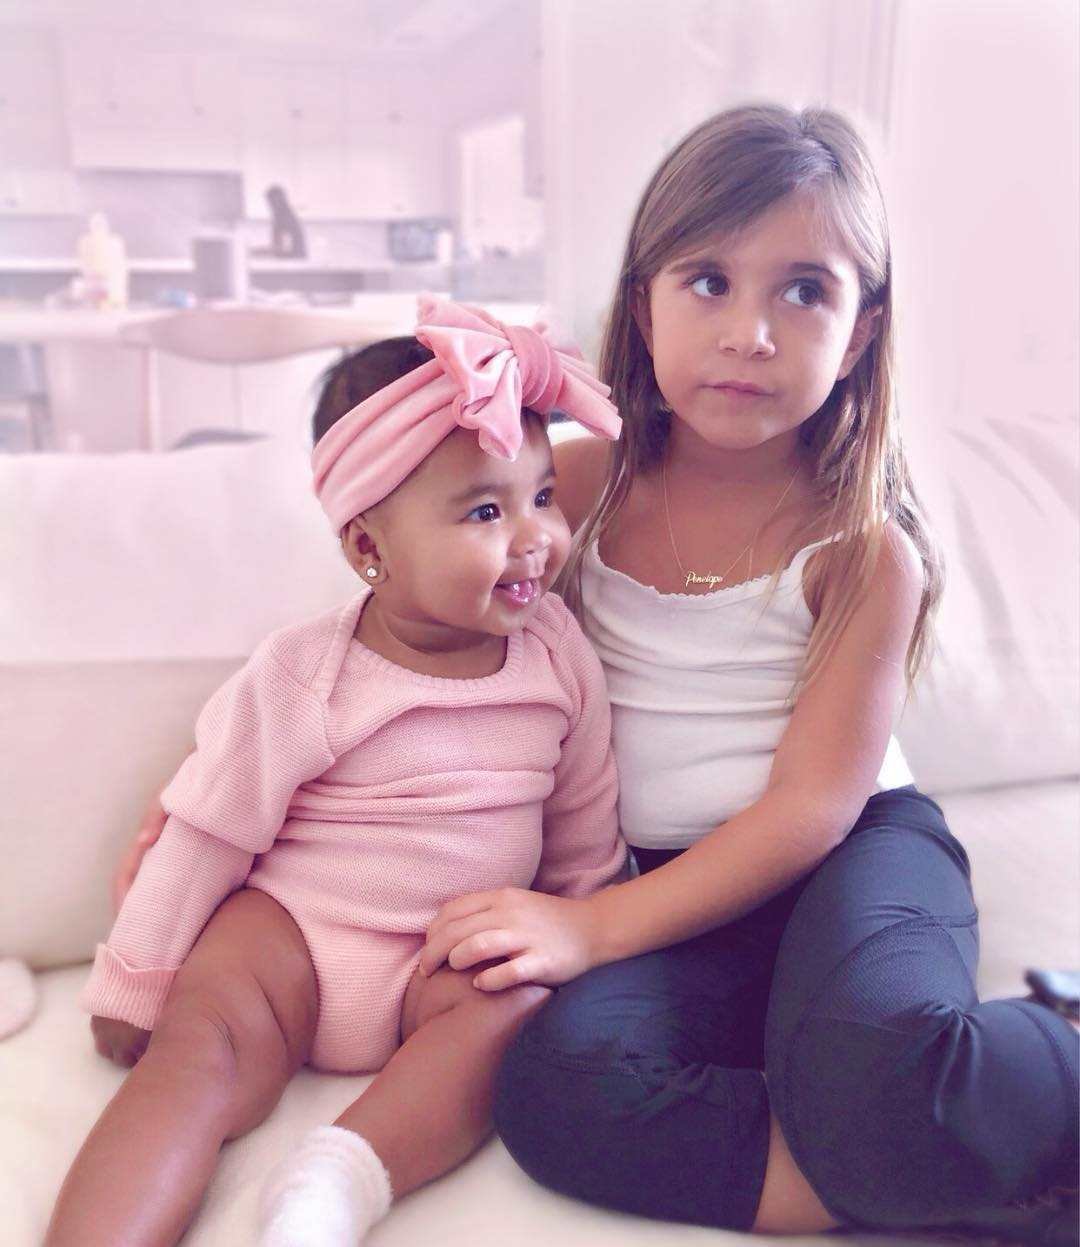 Penelope e True as mais fofas (Foto: Instagram/@khloekardashian)